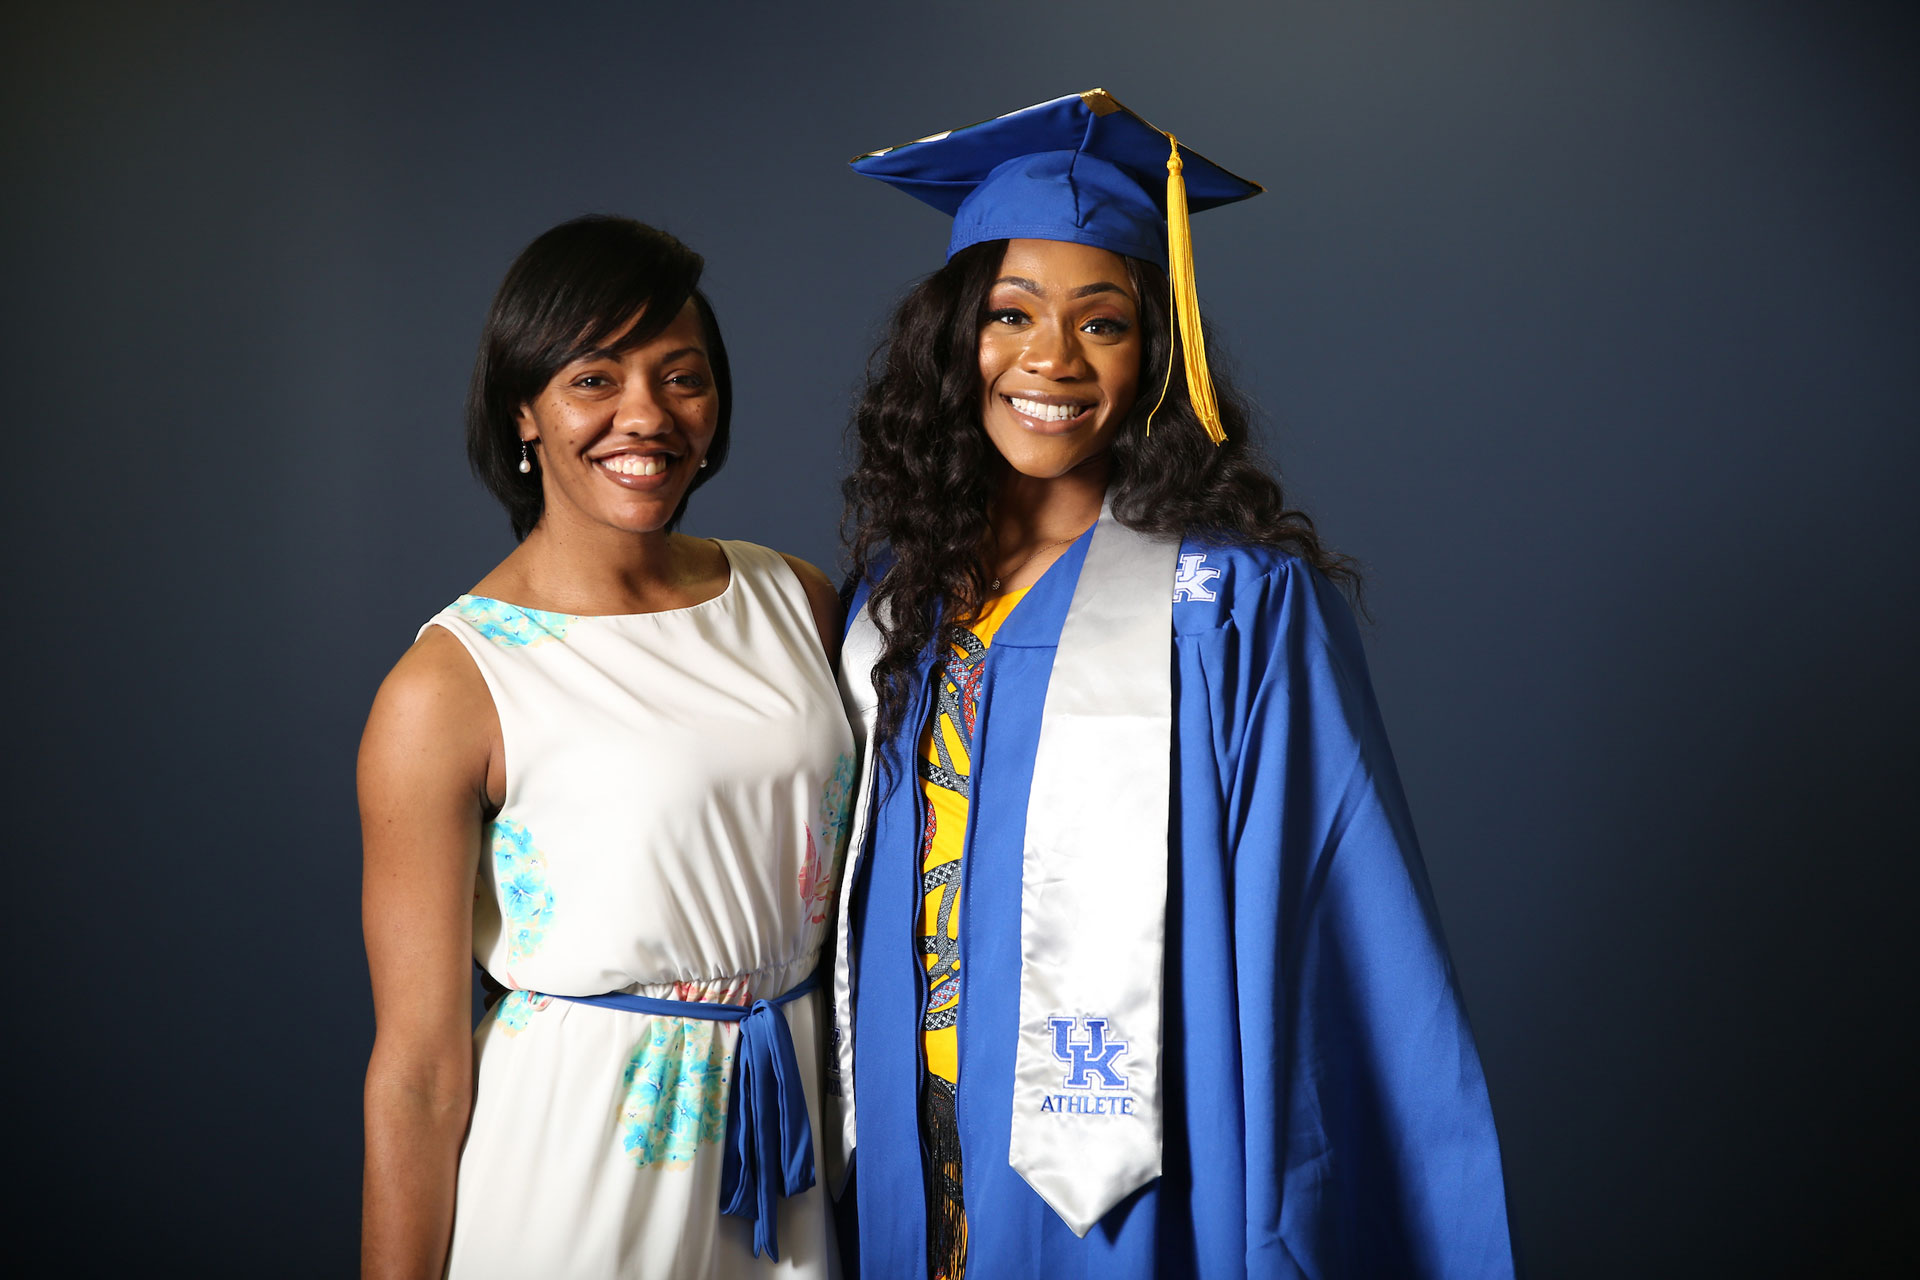 Ogechi poses for a photo in her graduation cap and gown, a yellow dress under her robes, and a silver UK Athlete stole. She is smiling broadly and her hair is loose and curled. Standing next to her is Tiffany Hayden, former Women's Basketball academic advisor and current Assistant Athletic Director for Diversity, Equity and Inclusion. Tiffany, a young-looking Black woman, is wearing a white dress with floral print and is smiling.